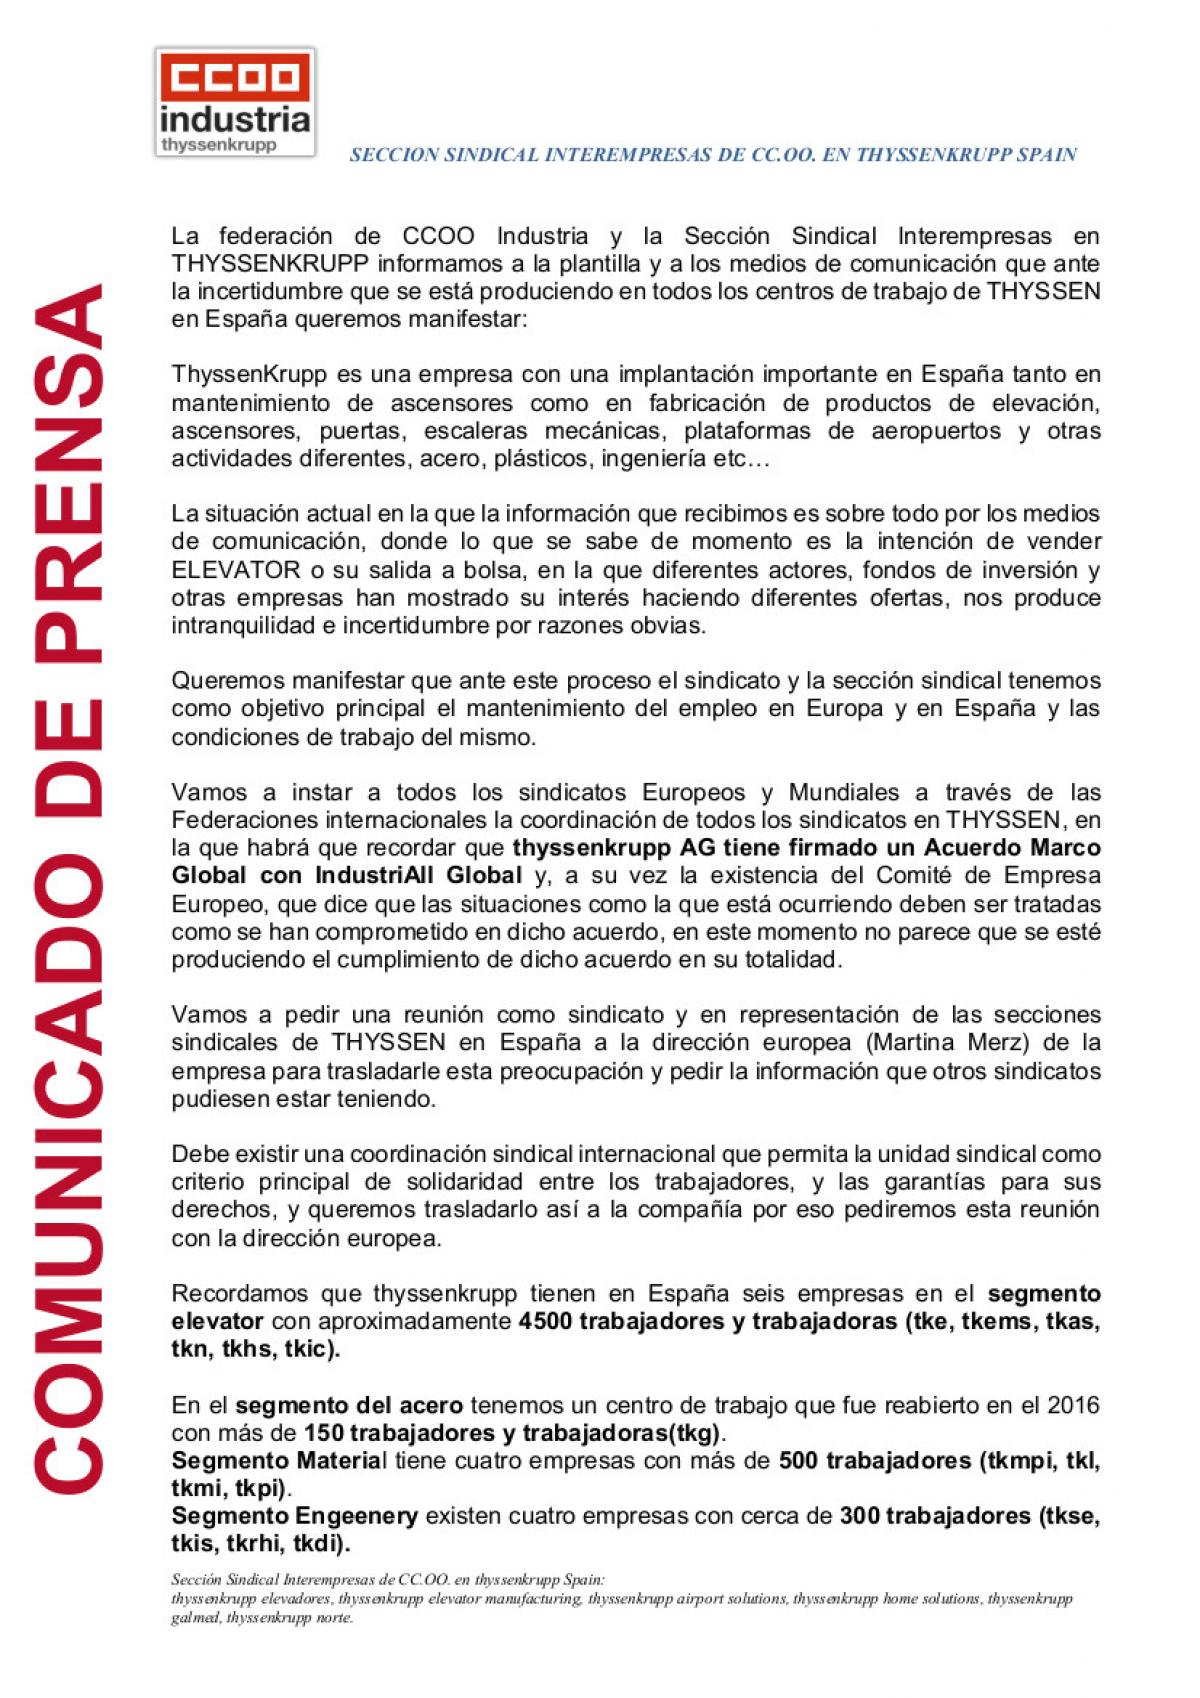 Comunicado de la SECCION SINDICAL INTEREMPRESAS DE CC.OO